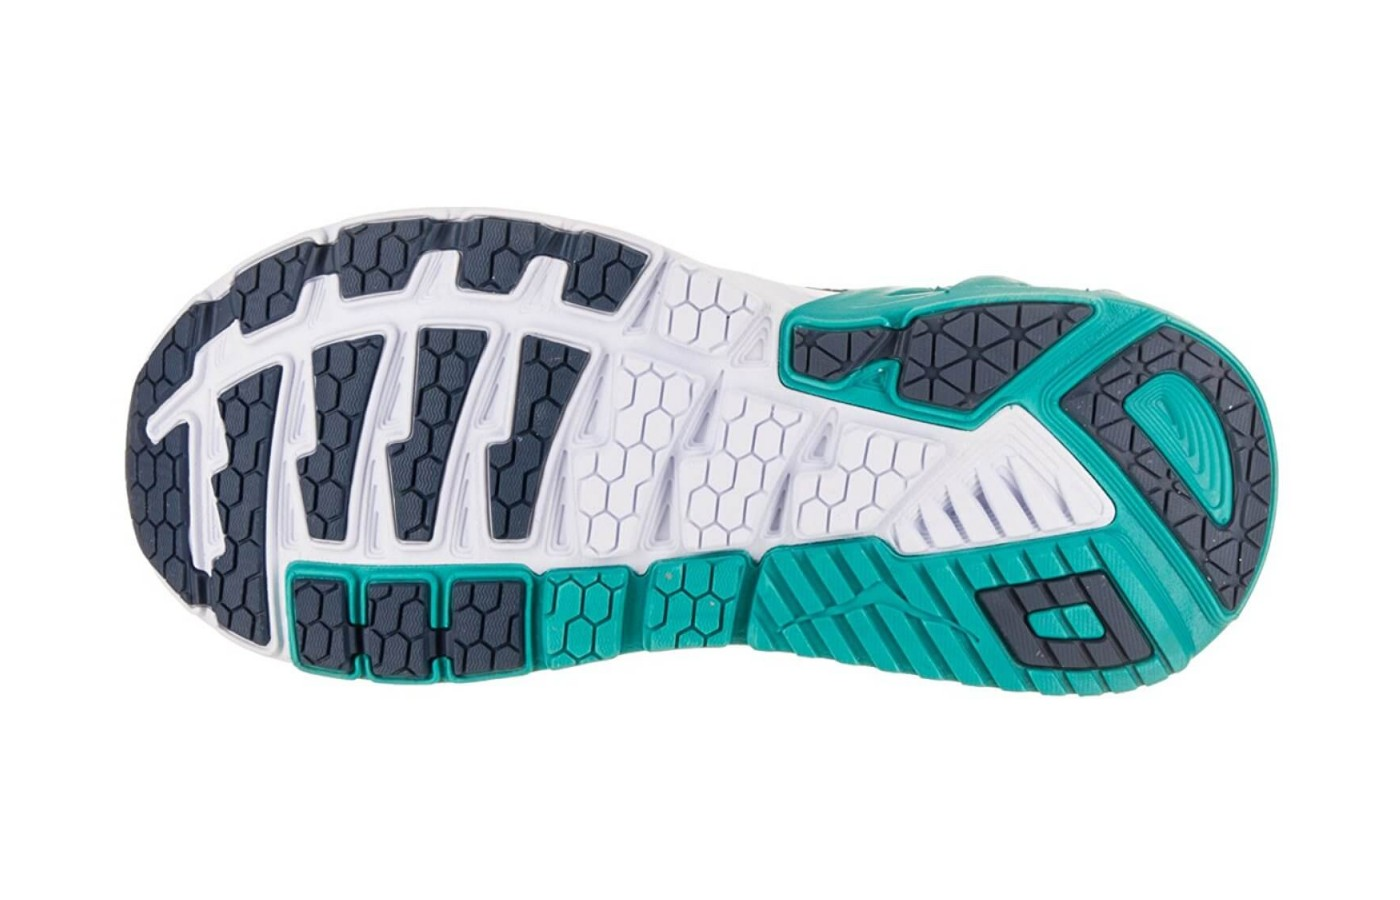 The Hoka One One Arahi 2 has a rubber outsole